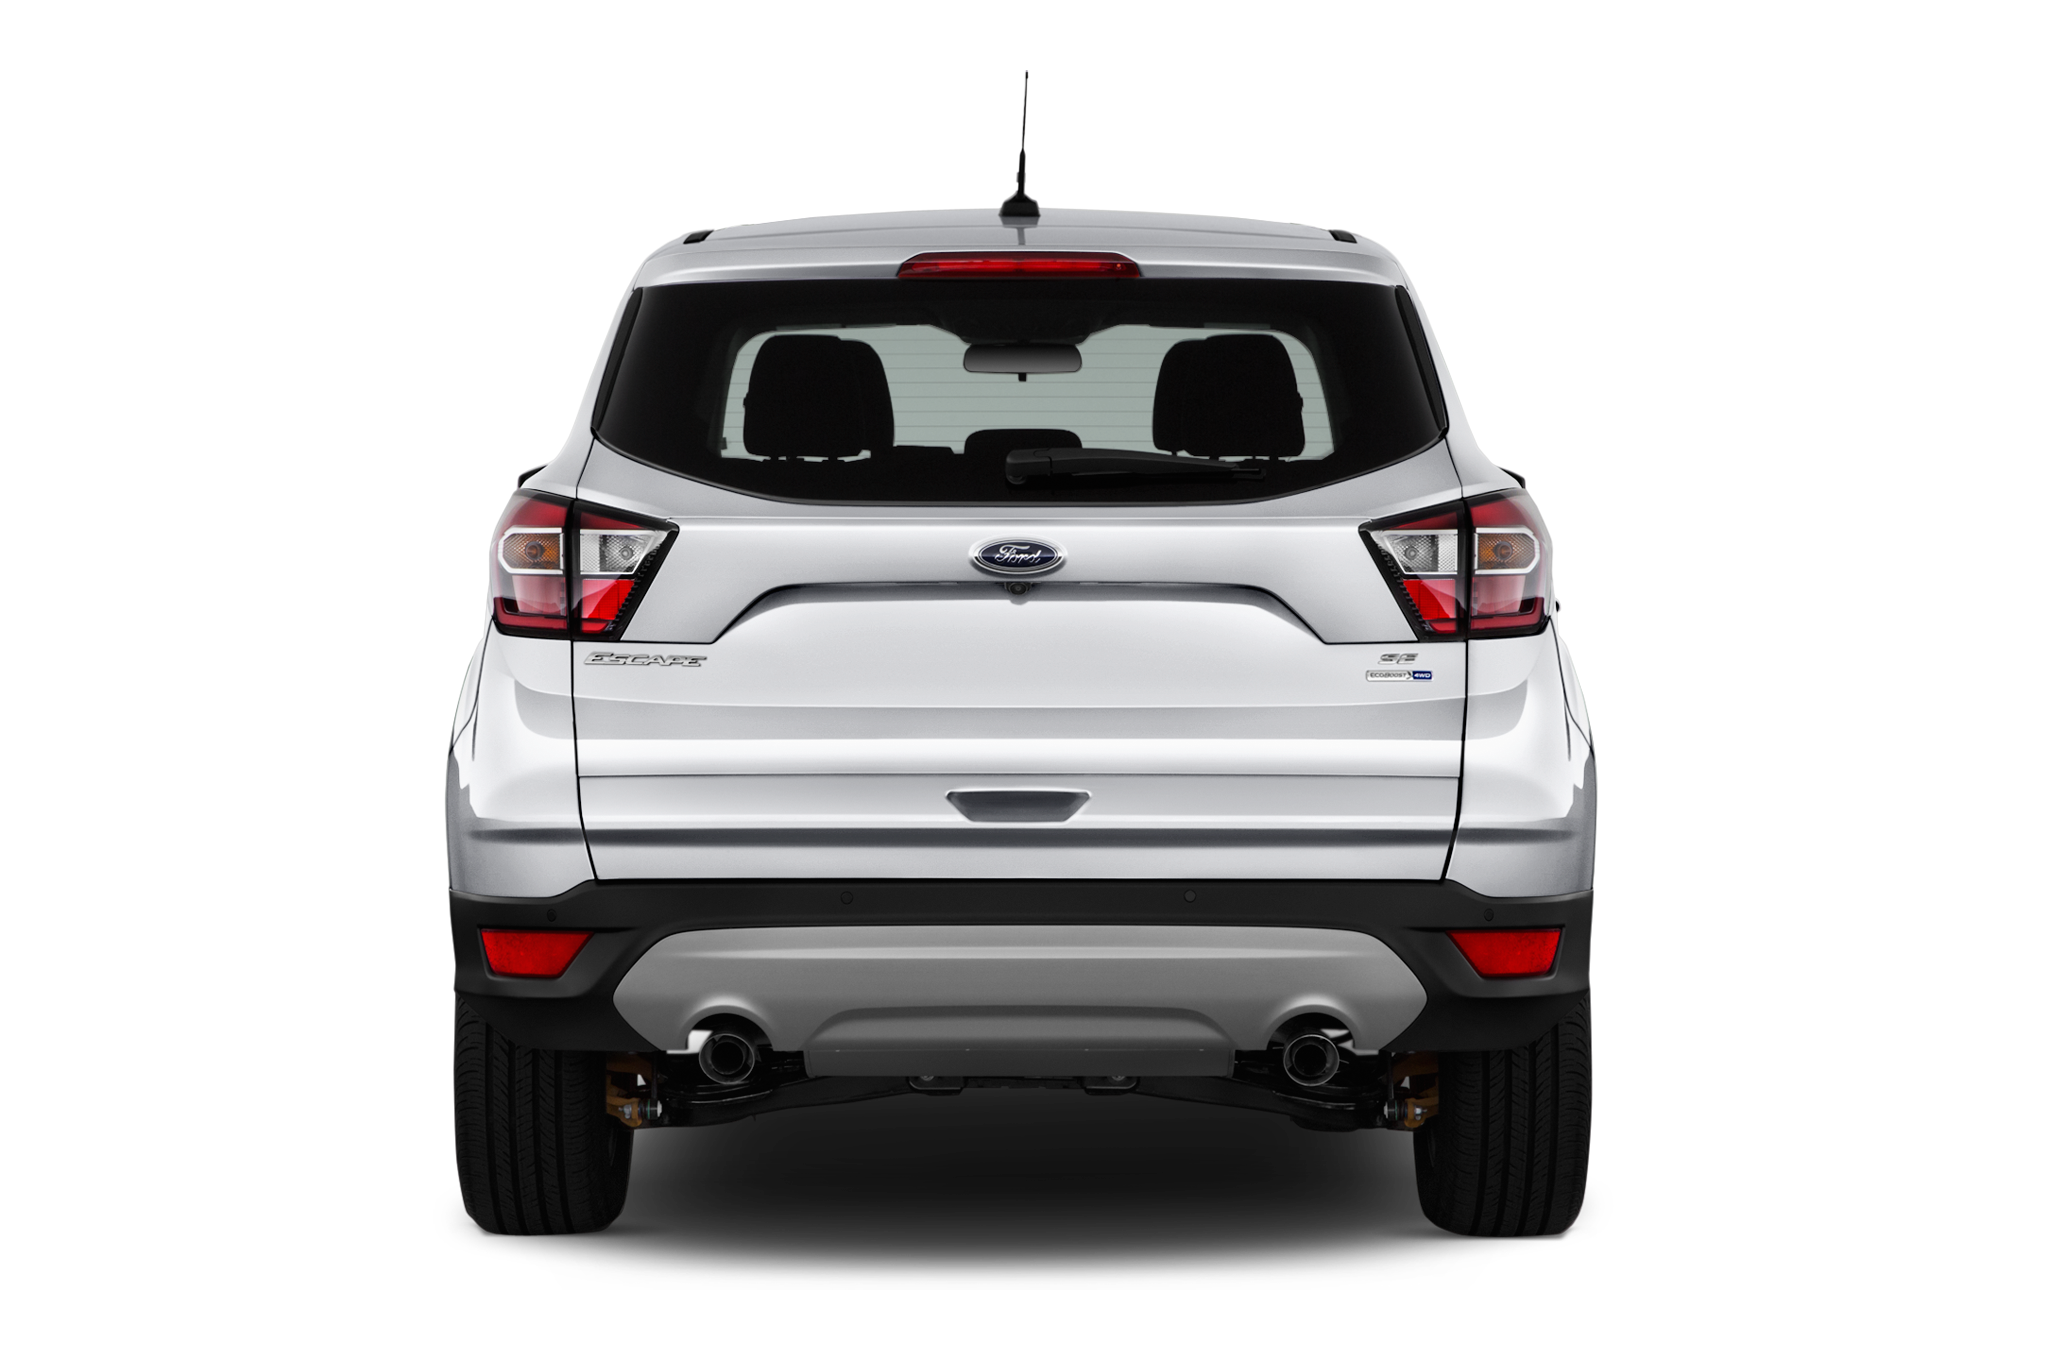 2017 Ford Escape Adds New Sport Appearance Package Raptor 250 08 Wiring Diagram 16 39